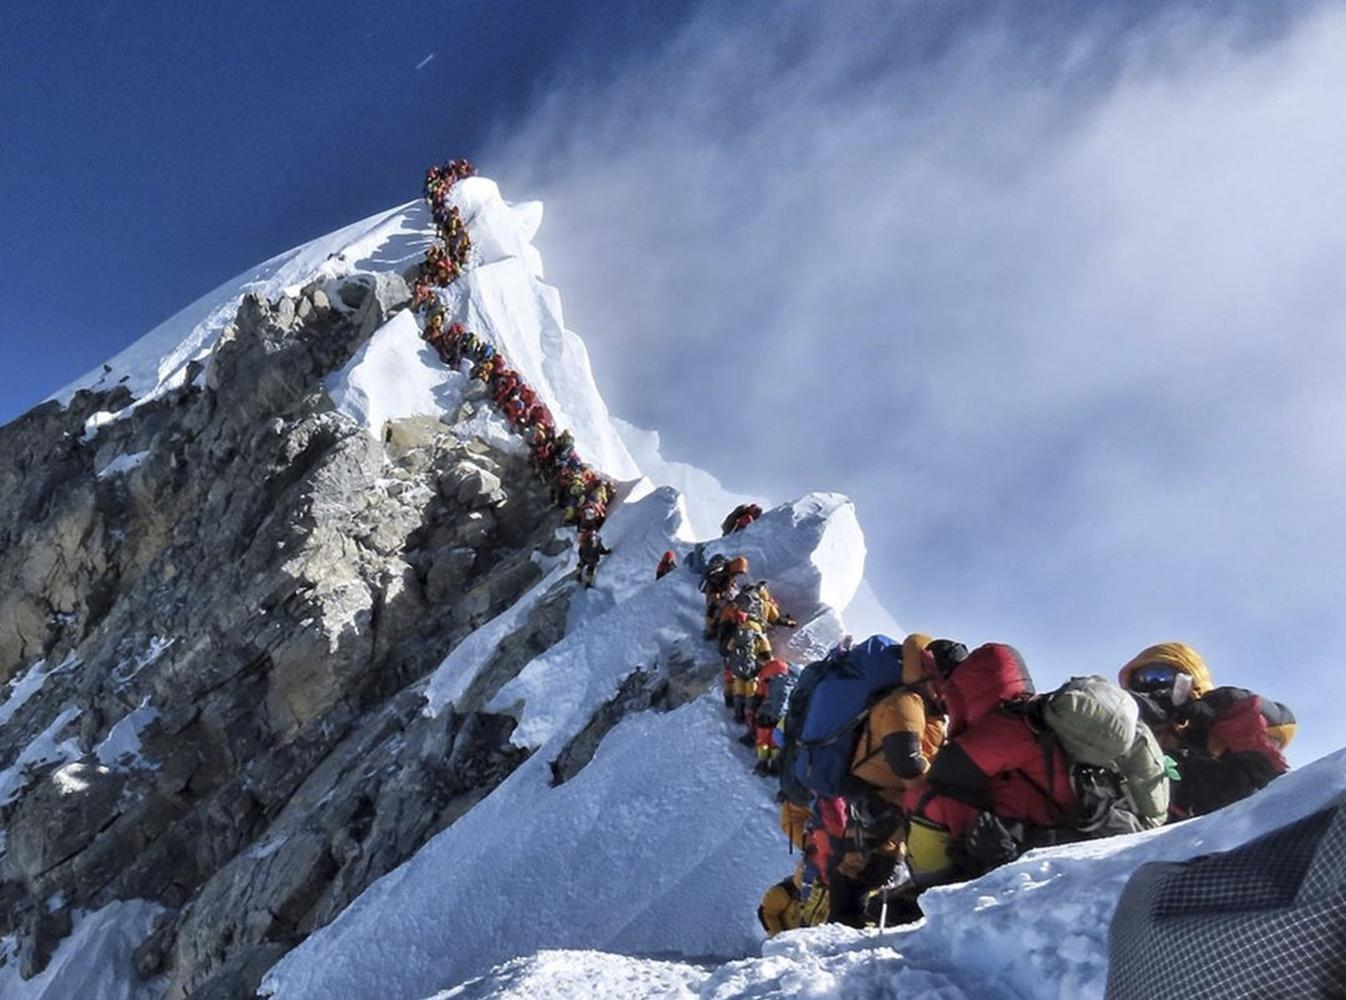 snail trail: In this photo taken on May 22, long queue of mountain climbers line a path on Mount Everest.